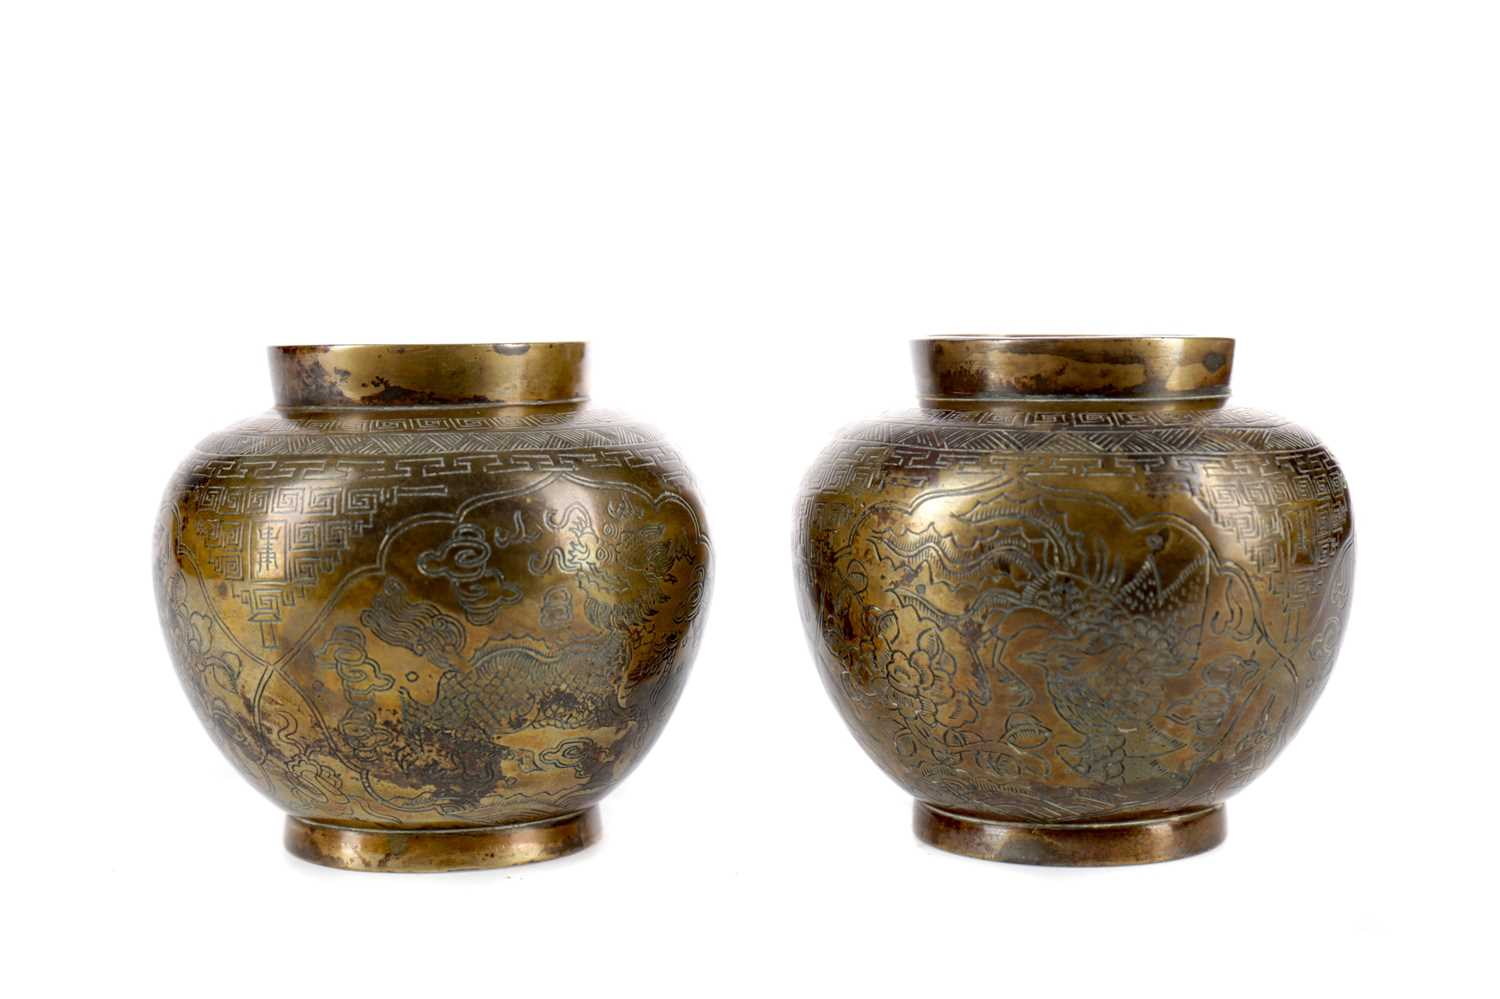 Lot 734 - A PAIR OF EARLY 20TH CENTURY CHINESE BRONZE VASES